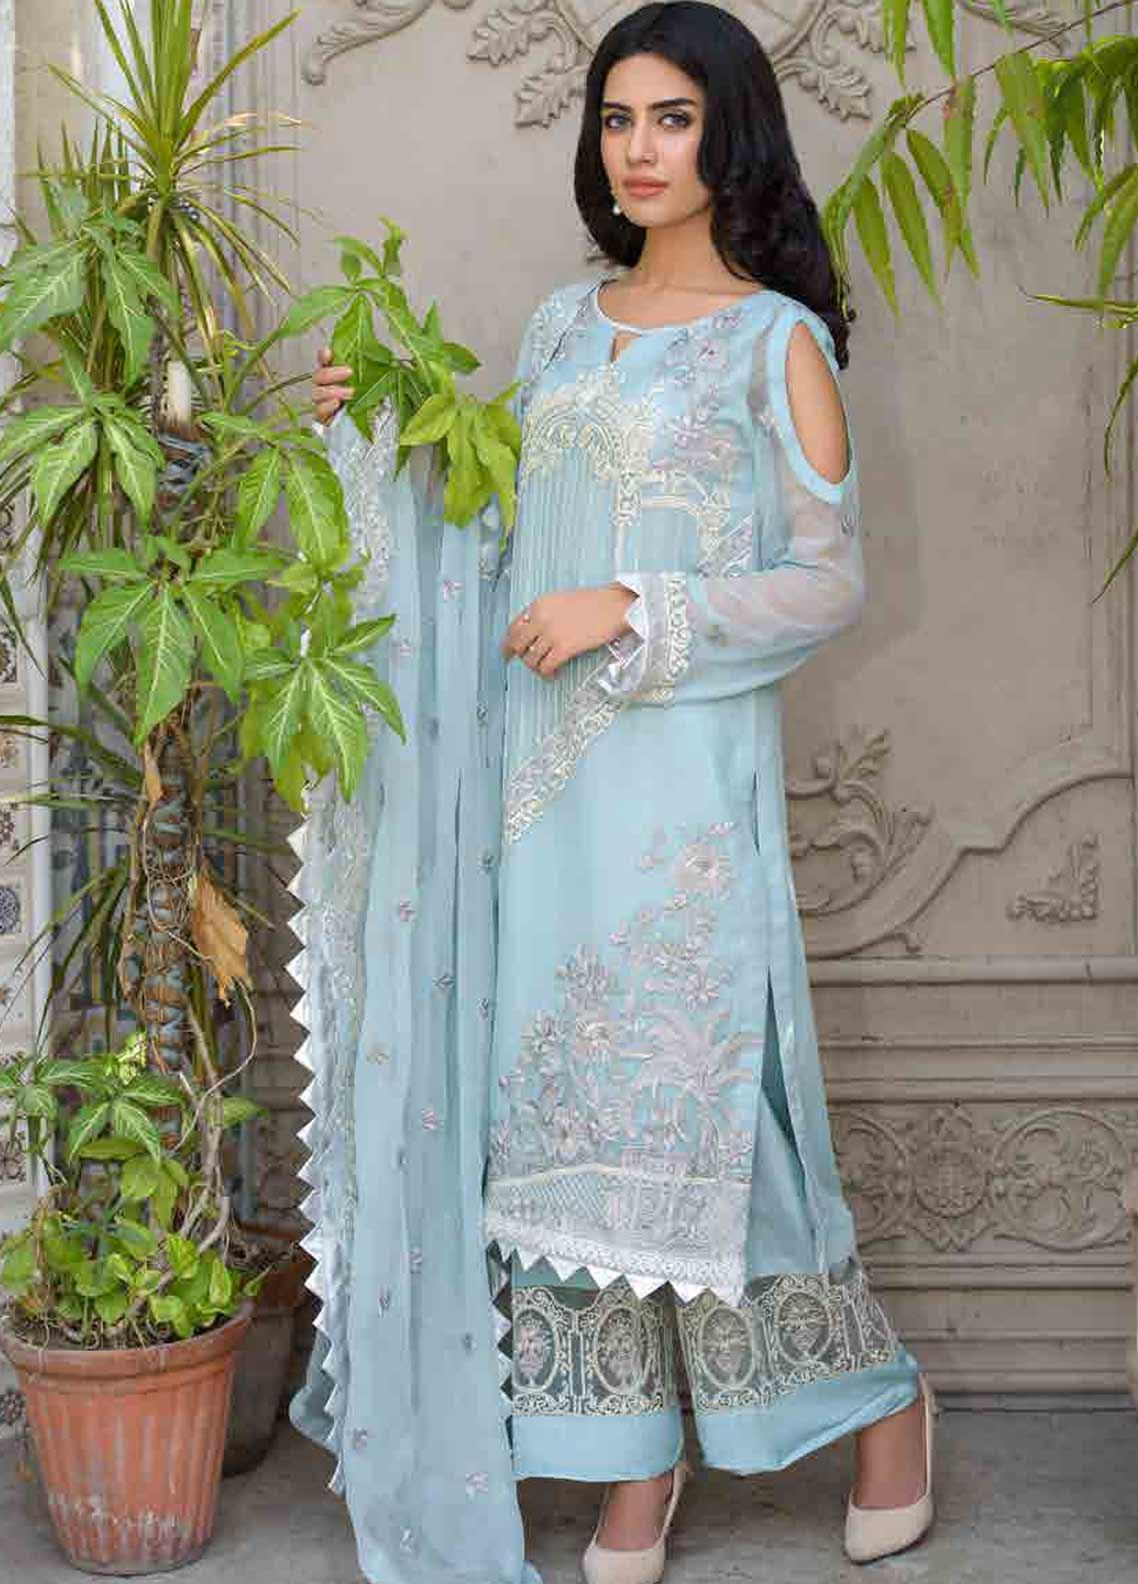 Motifz Embroidered Chiffon Unstitched 3 Piece Suit MTF19-C3 2262 AQUA BLUE - Luxury Collection